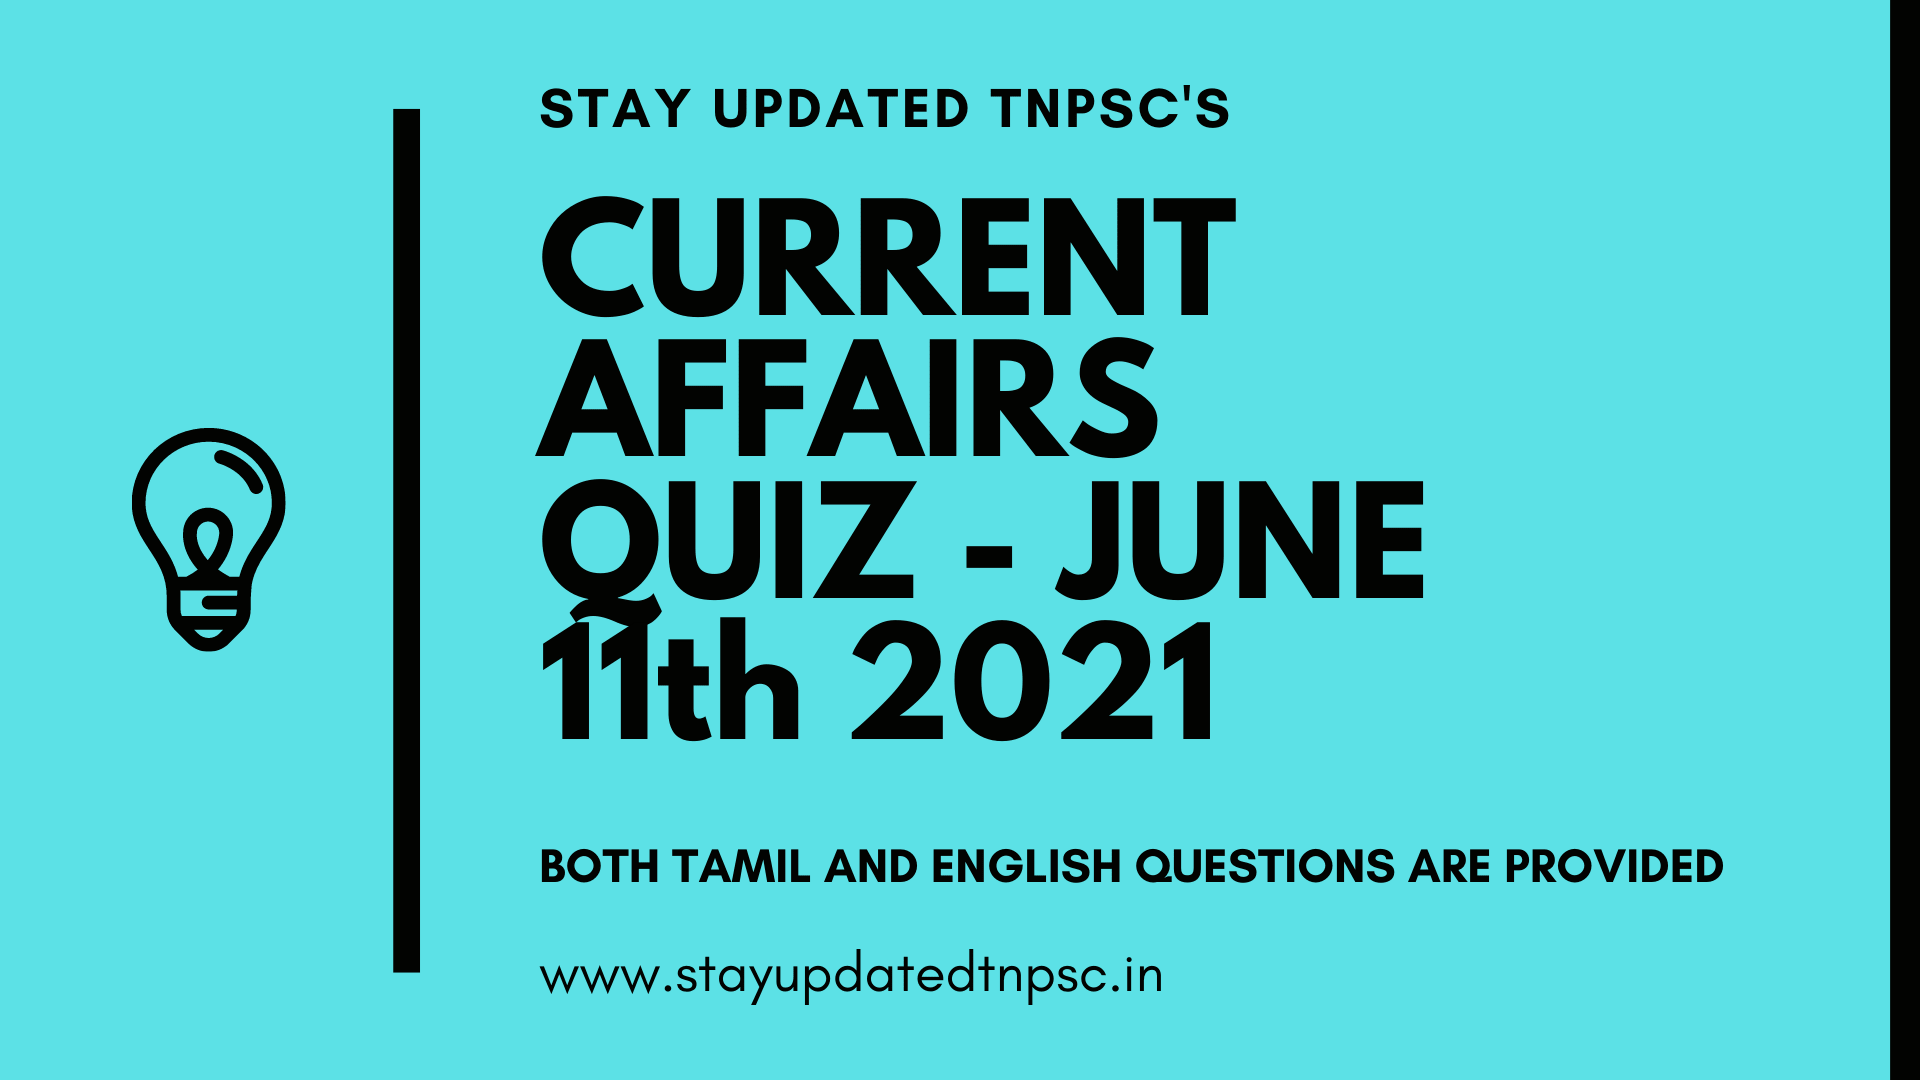 TNPSC DAILY CURRENT AFFAIRS: 11 JUNE 2021